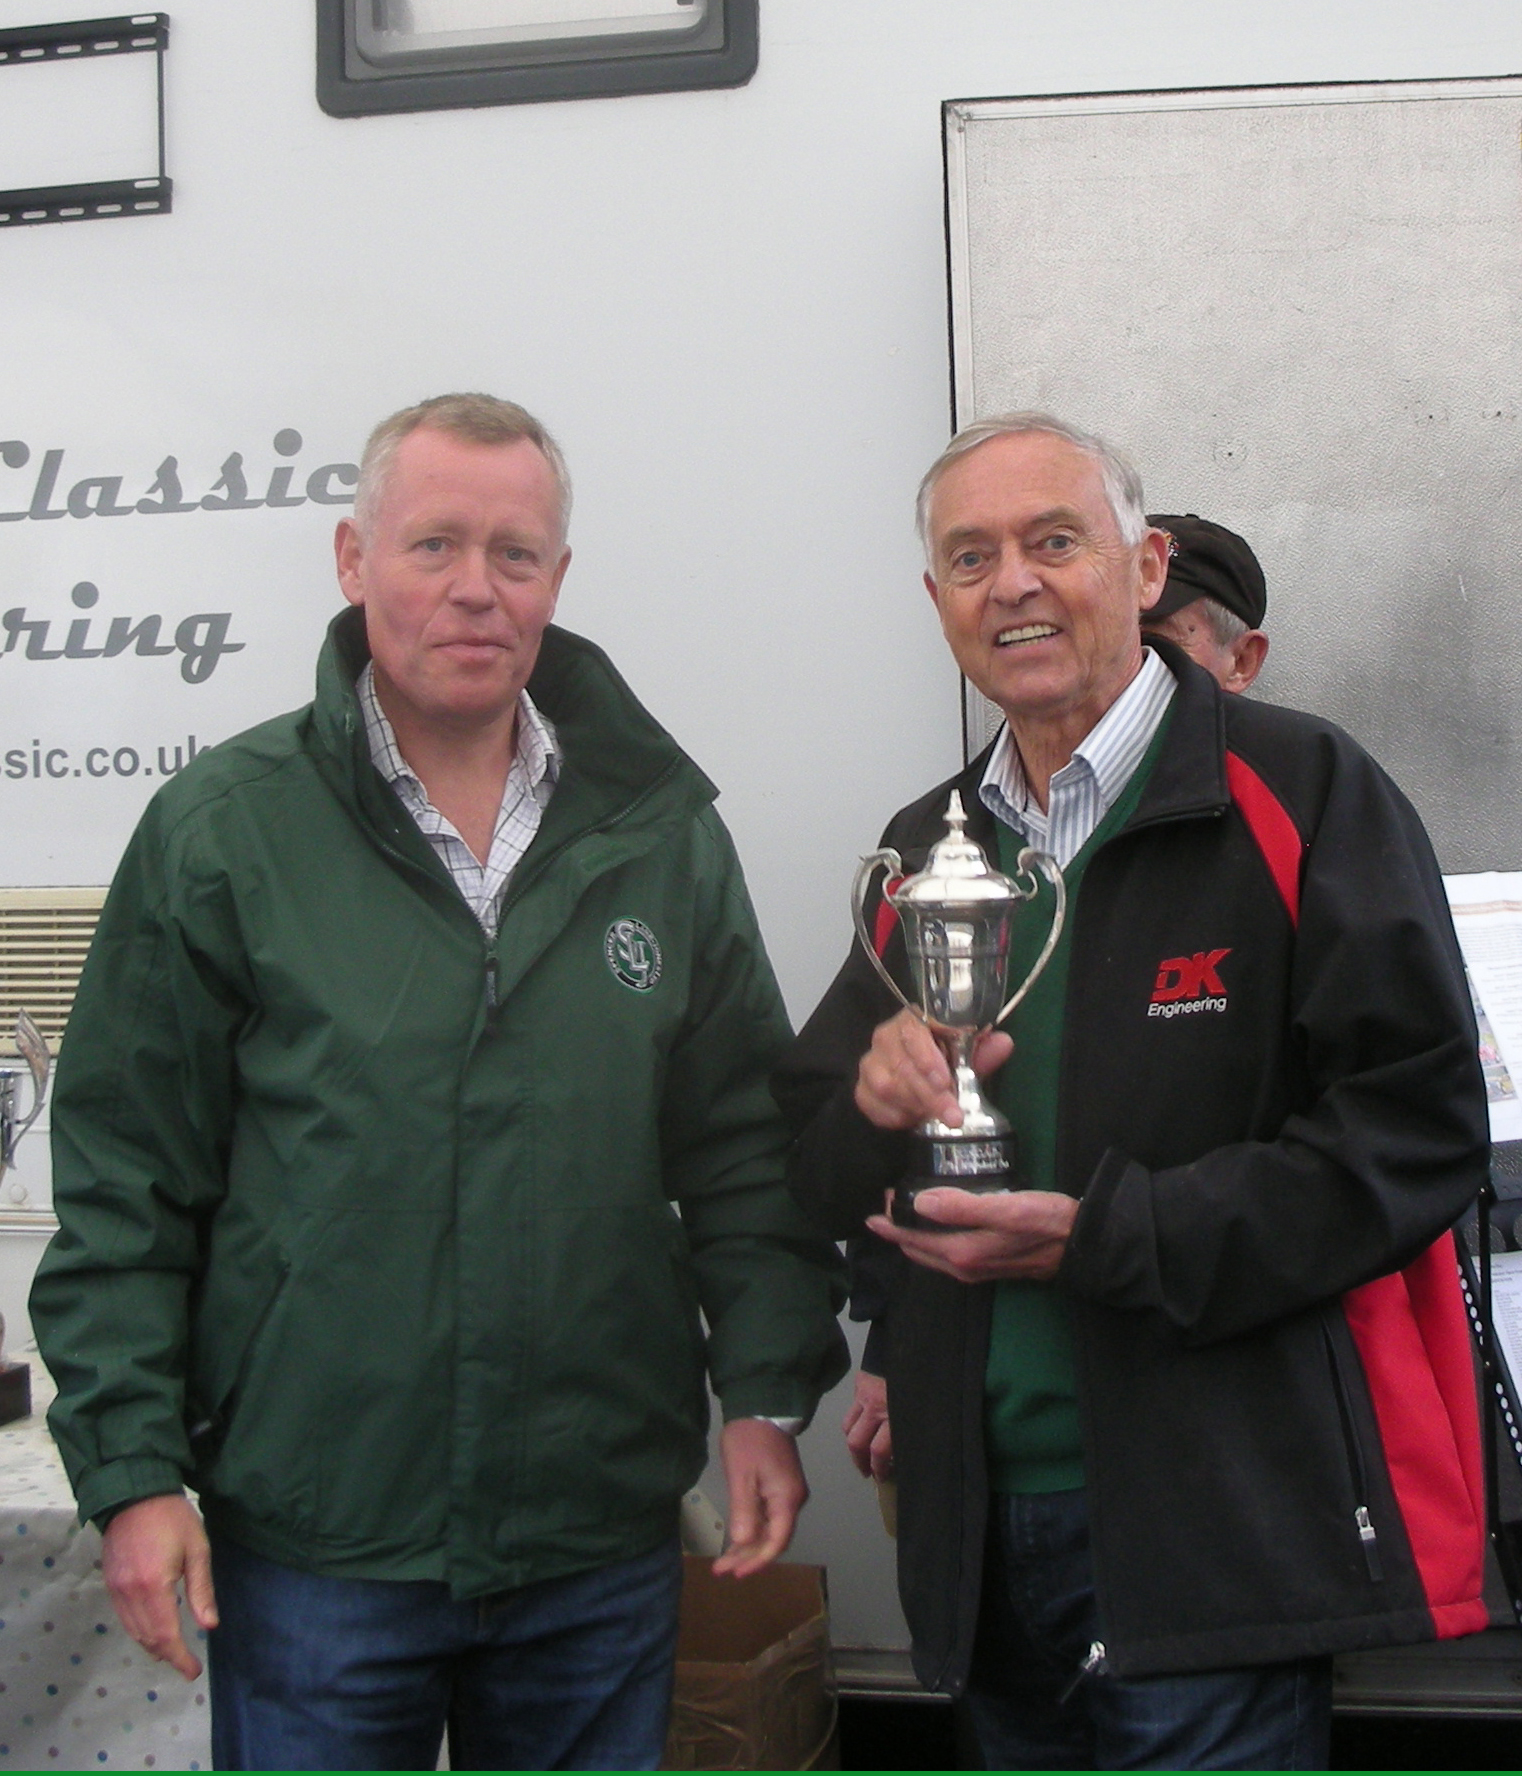 David Cottingham holds the Whitehead Cup, just presented to him by Miles Toulson-Clarke, owner of Spencer Lane-Jones Ltd, who sponsored our Castle Combe race for the second year running. They stand in front of the Woolmer Classic Engineering unit which has again provided our members with splendid hospitality all season. Photo - Pat Arculus, Tripos Media